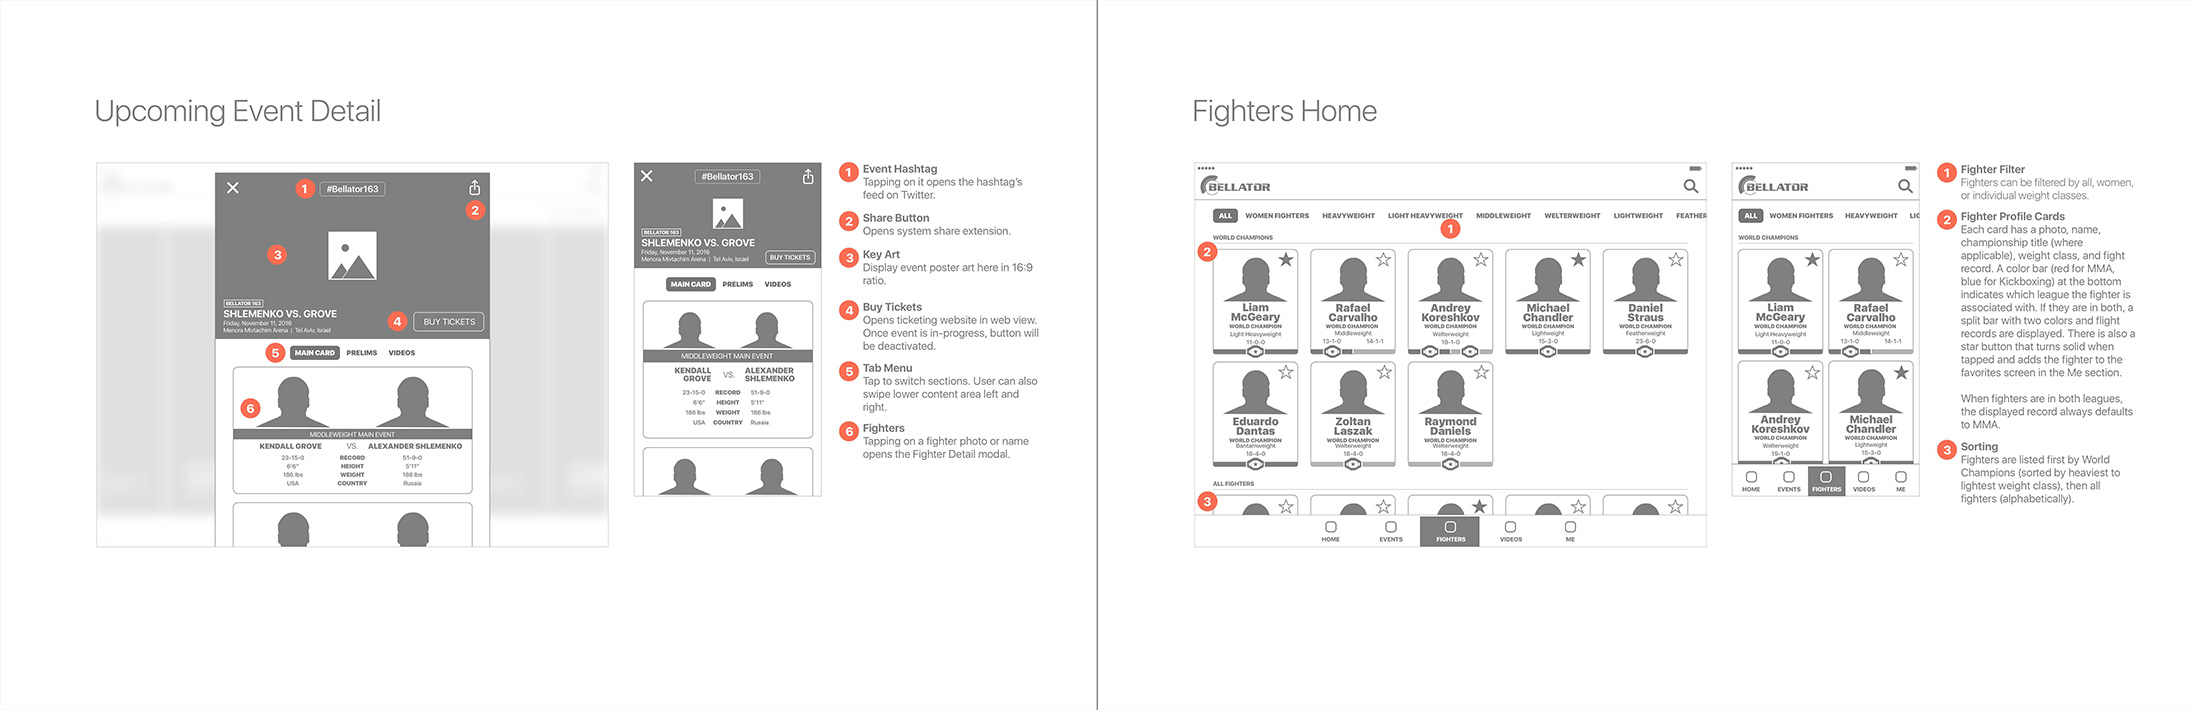 Other sections: Event Screens and Fighter Screens